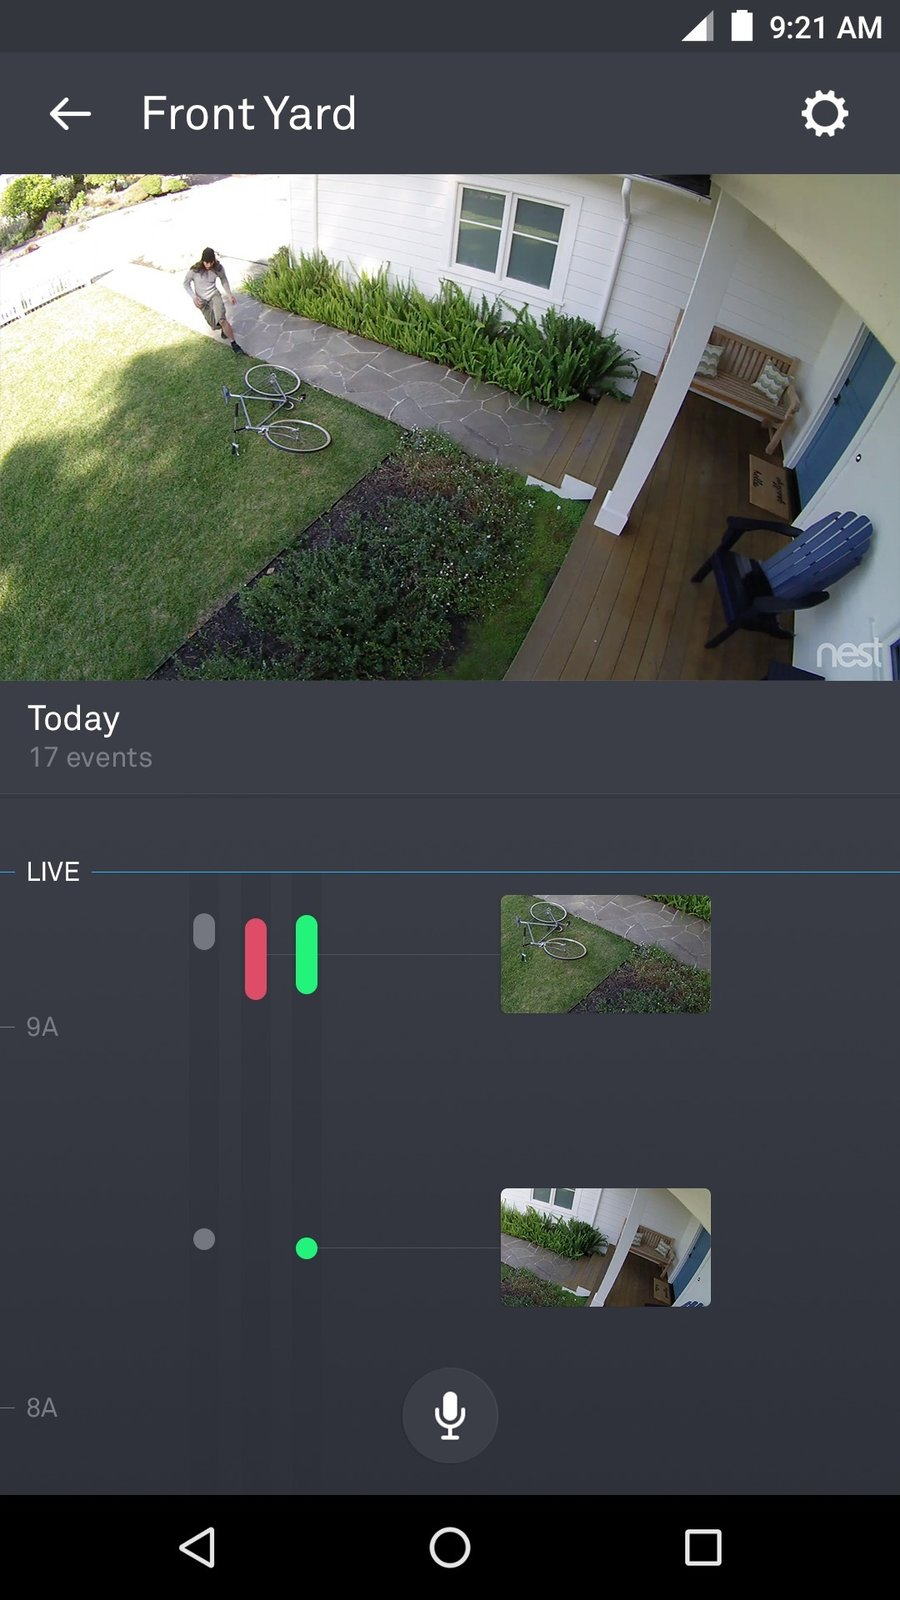 All Nest Cam owners get a free 3-hour video history with Sightline. Nest Aware subscribers are able to scroll further through a continuous timeline with key moments highlighted through frames. Sightline allows users to zoom in on and replay important moments and delineate Activity Zones to monitor.  Photo 4 of 5 in Keep an Eye Out With the New Nest Cam